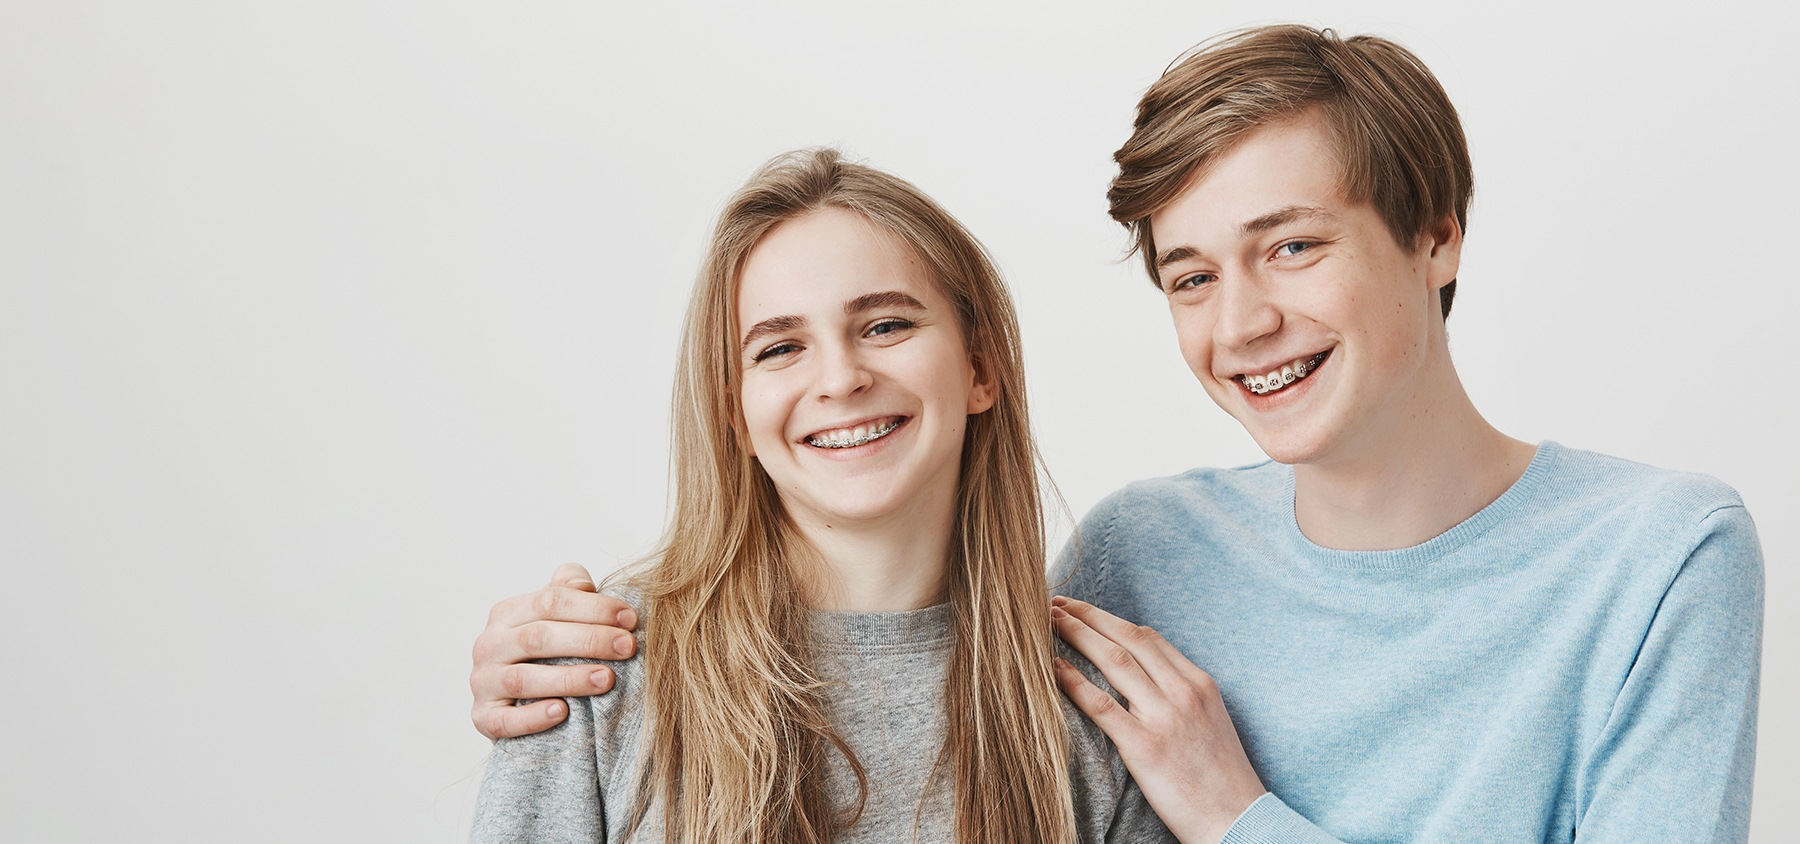 Two teens with braces smiling